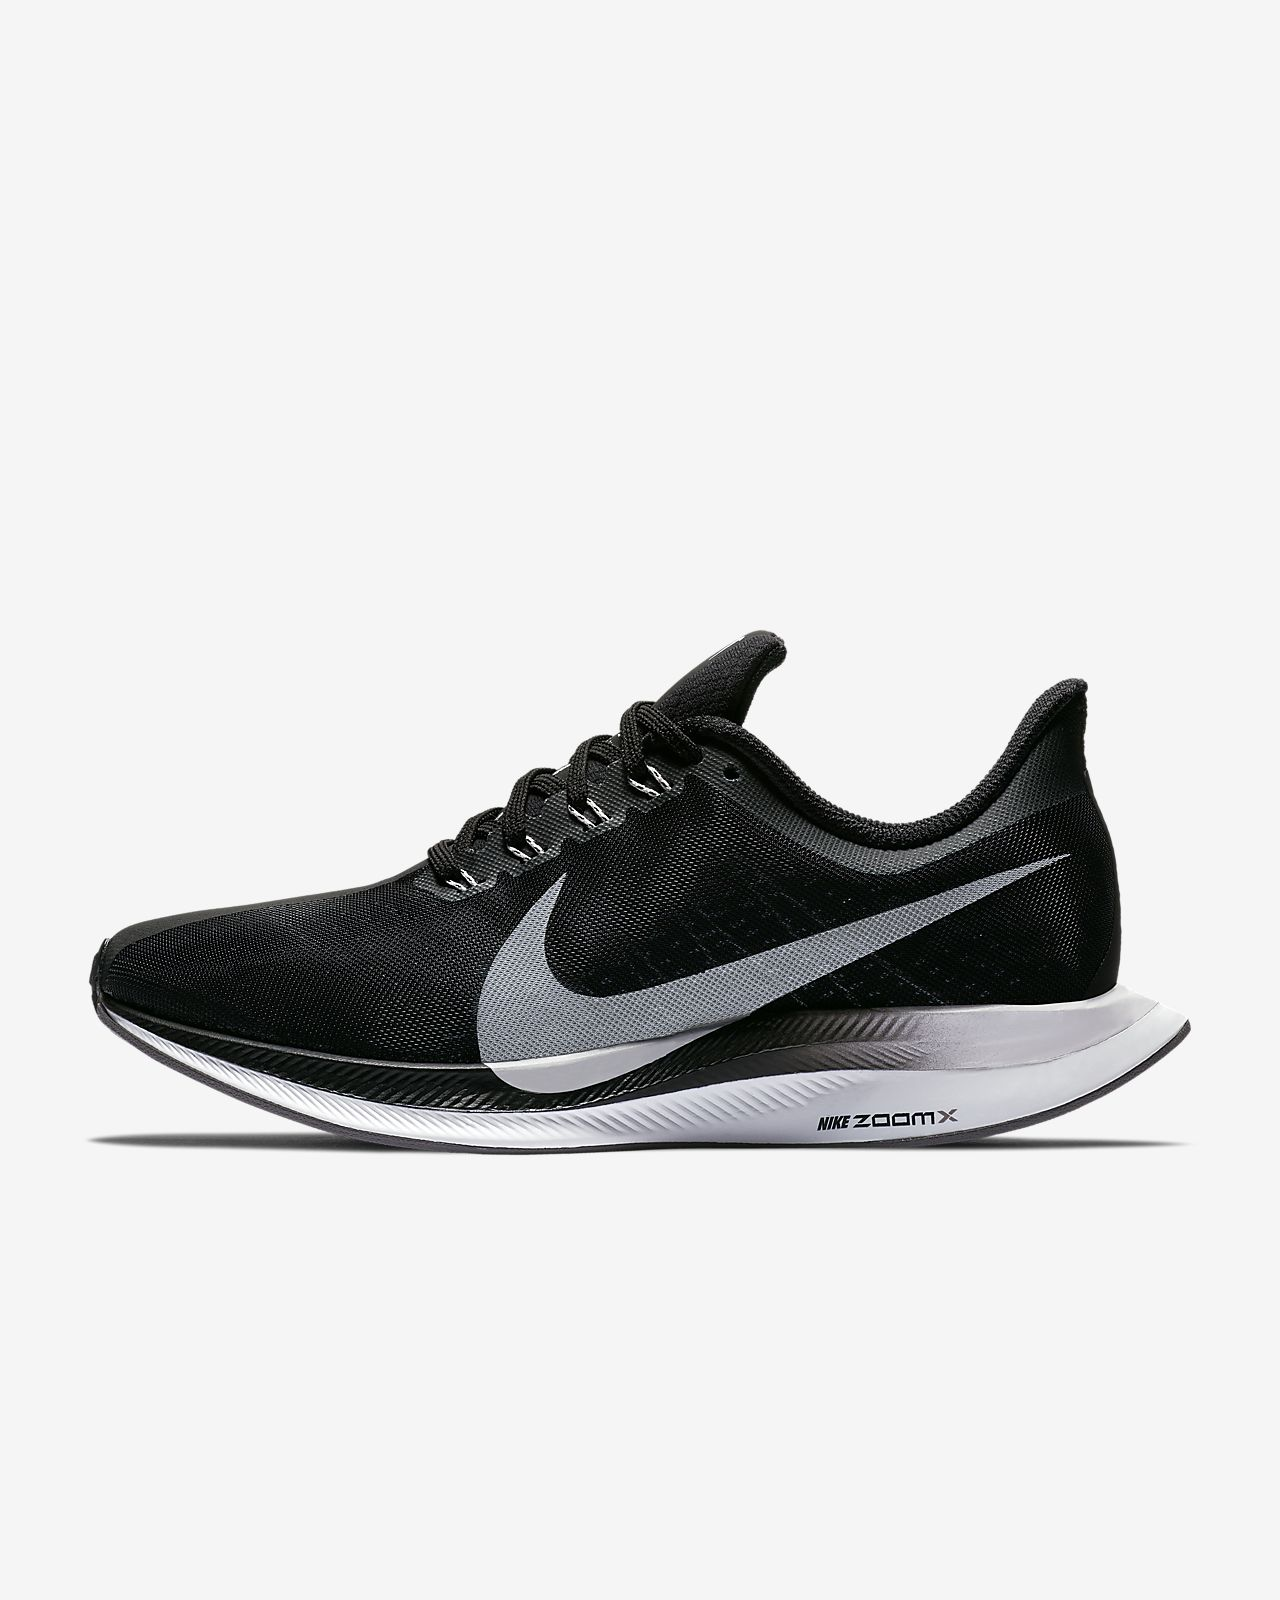 792791bc700 Nike Zoom Pegasus Turbo Women s Running Shoe. Nike.com GB